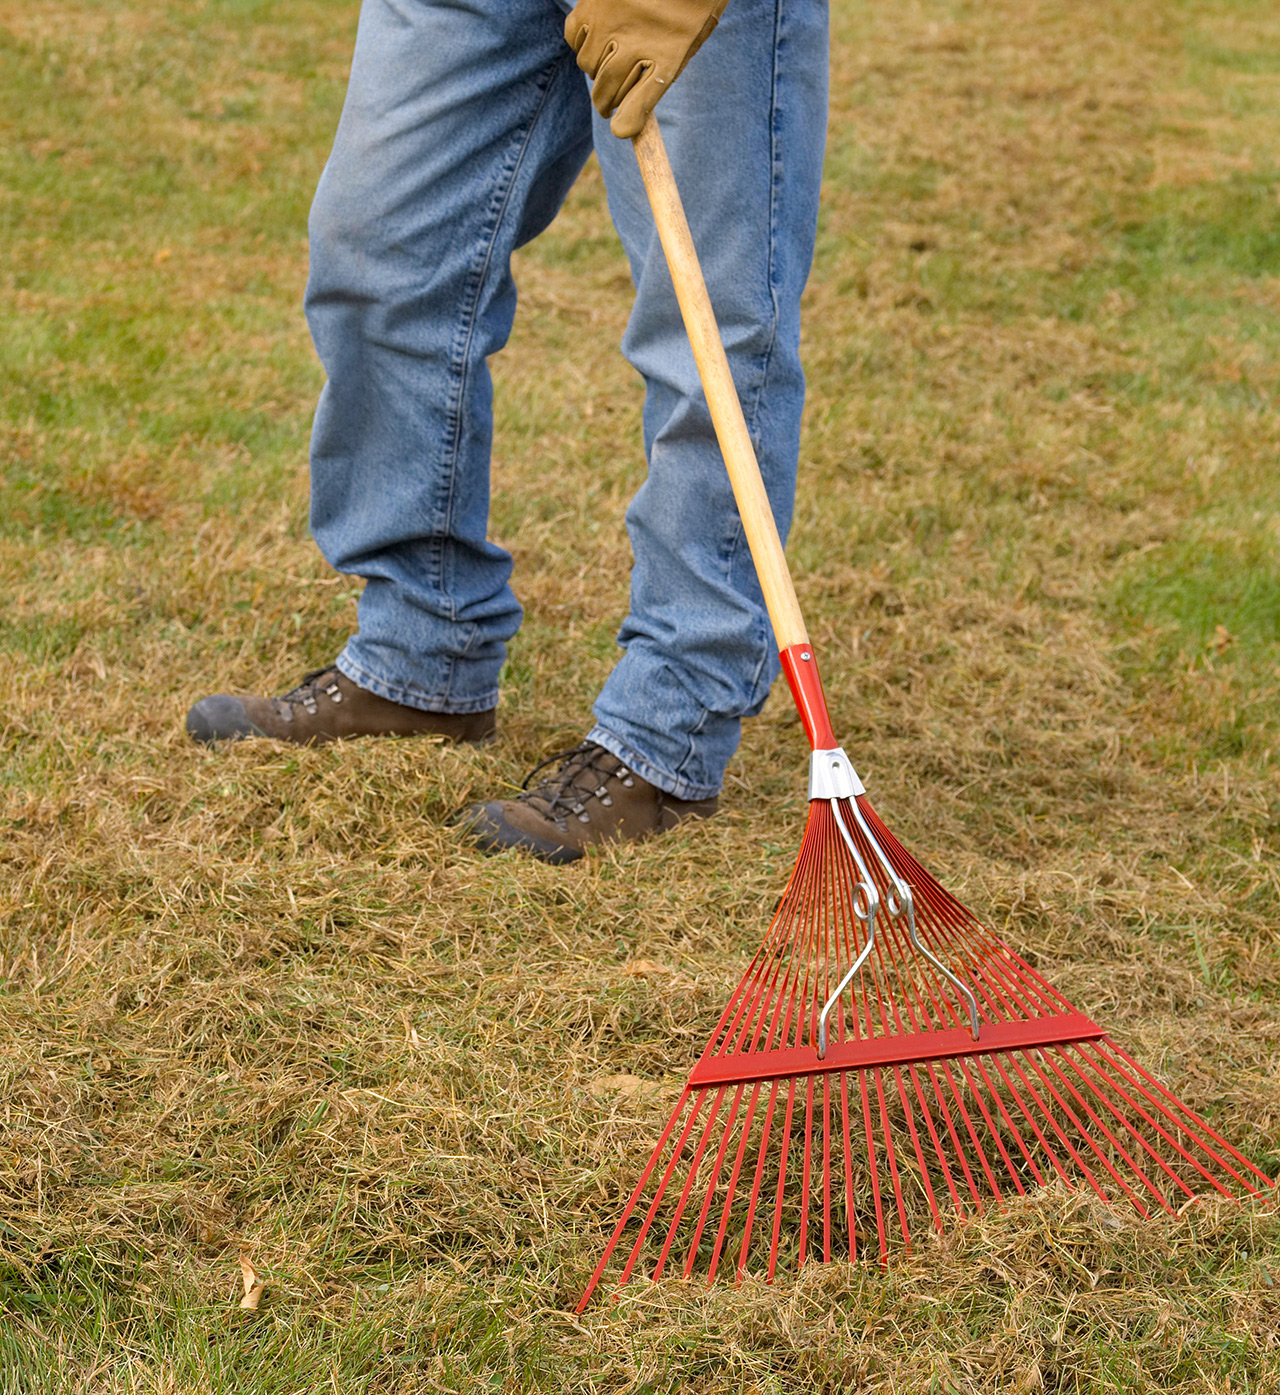 dethatching grass with red rake